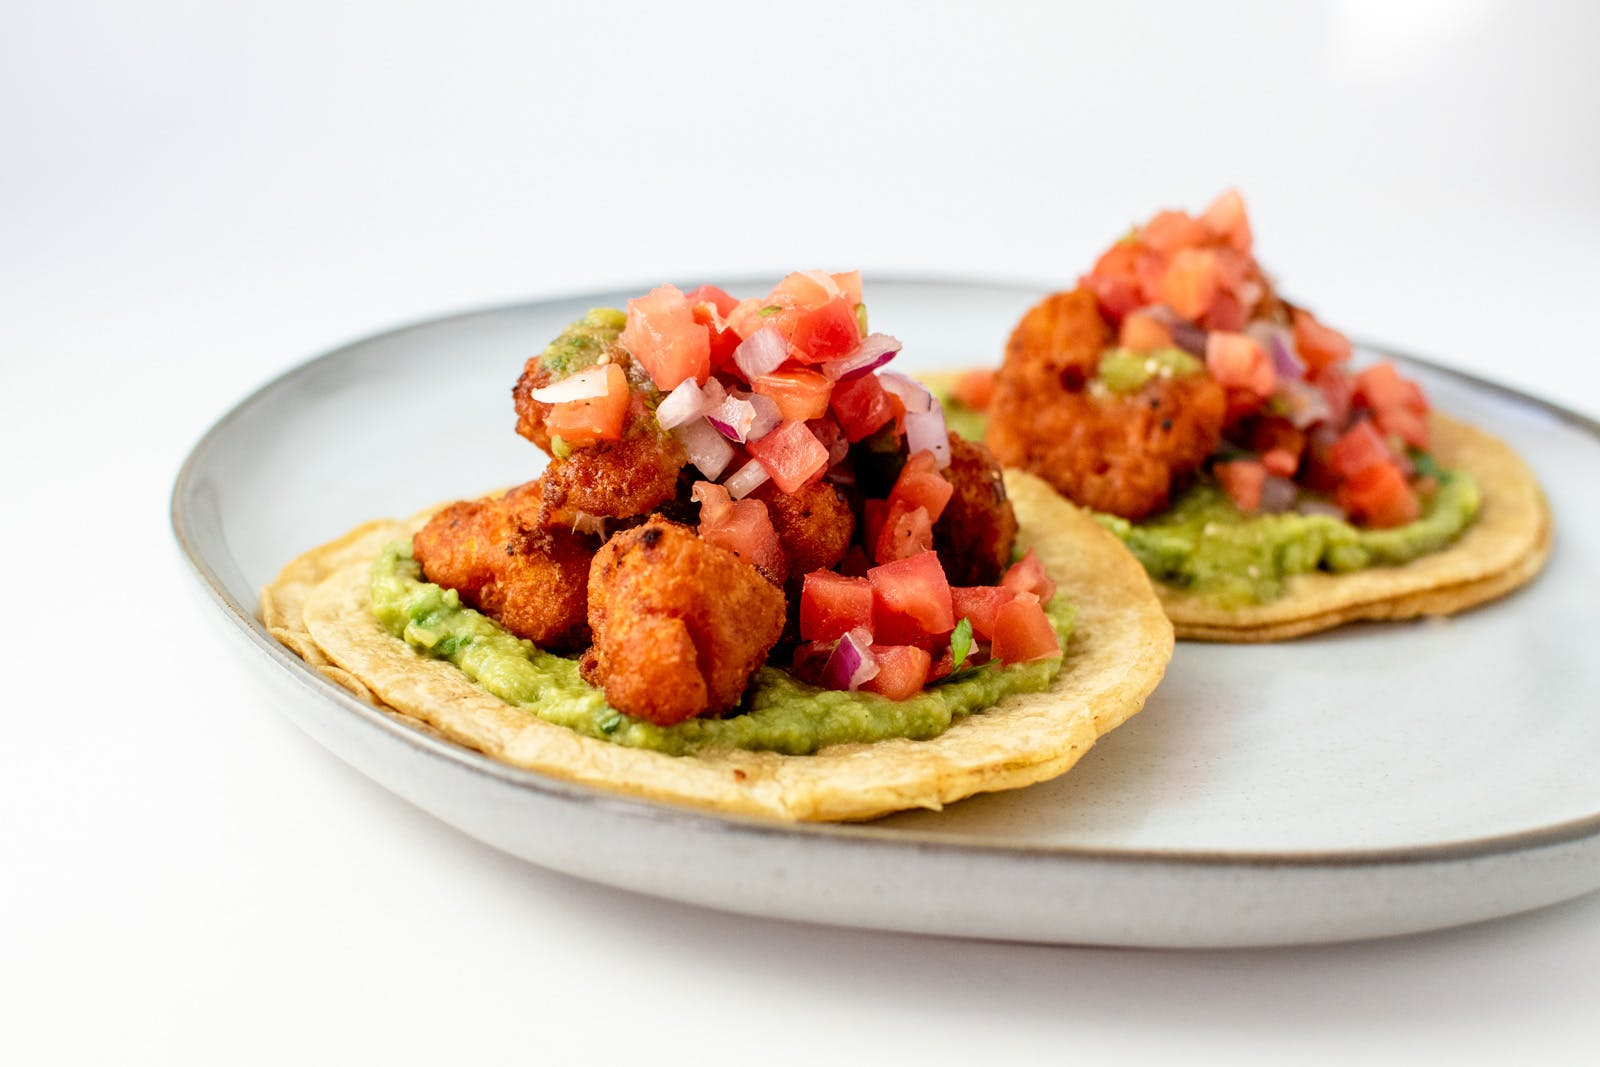 Beer Battered Cauliflower Tacos from Taco Royale - Eastside Madison in Madison, WI